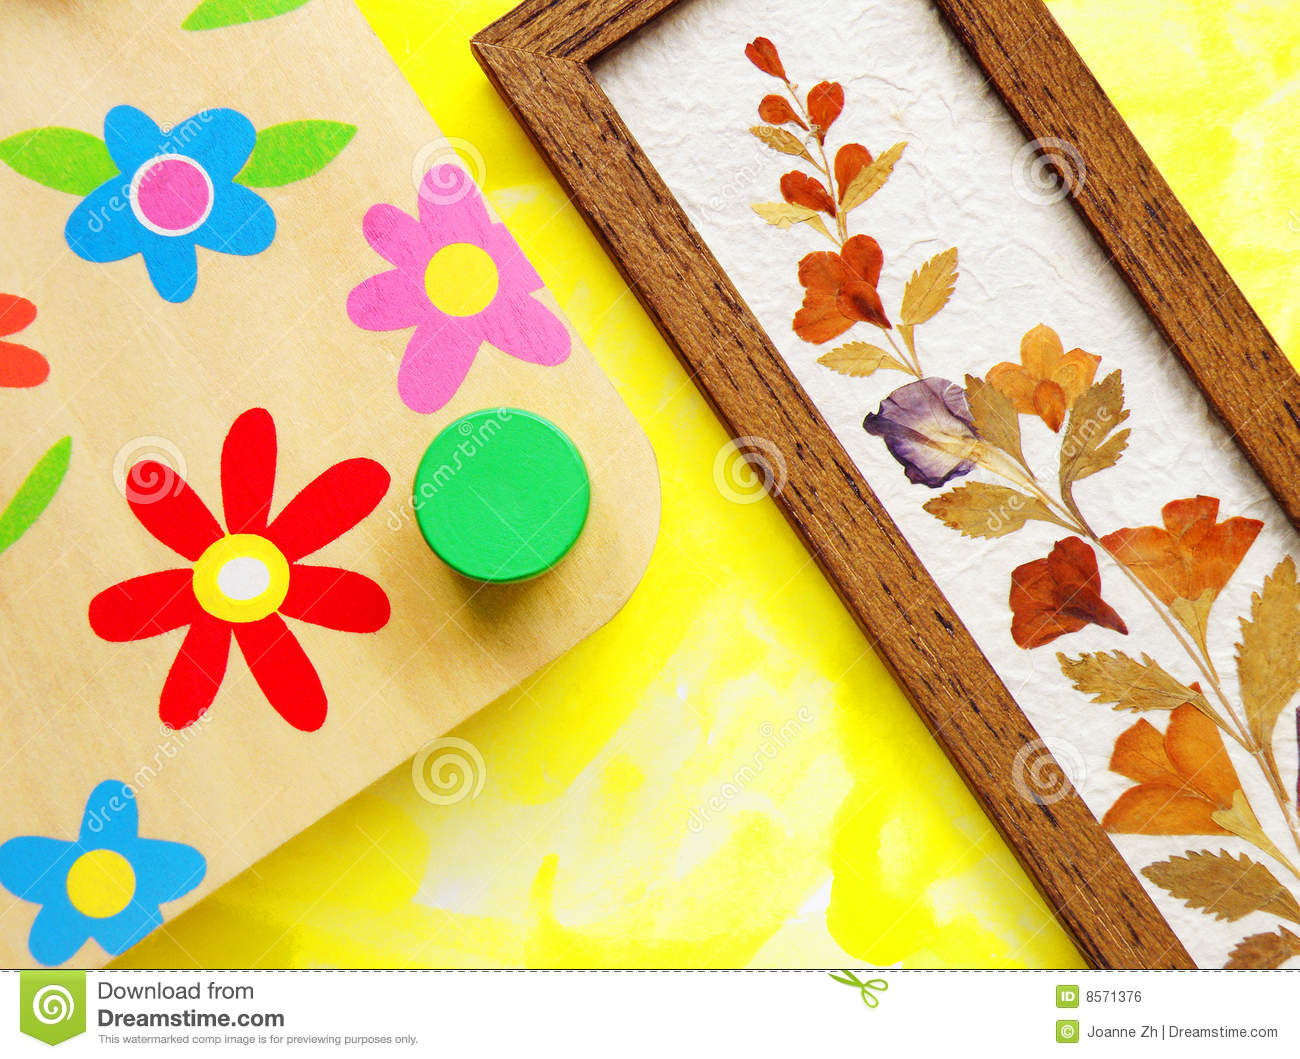 Flower crafts hobby stock photo image of equipments for Crafts and hobbies ideas